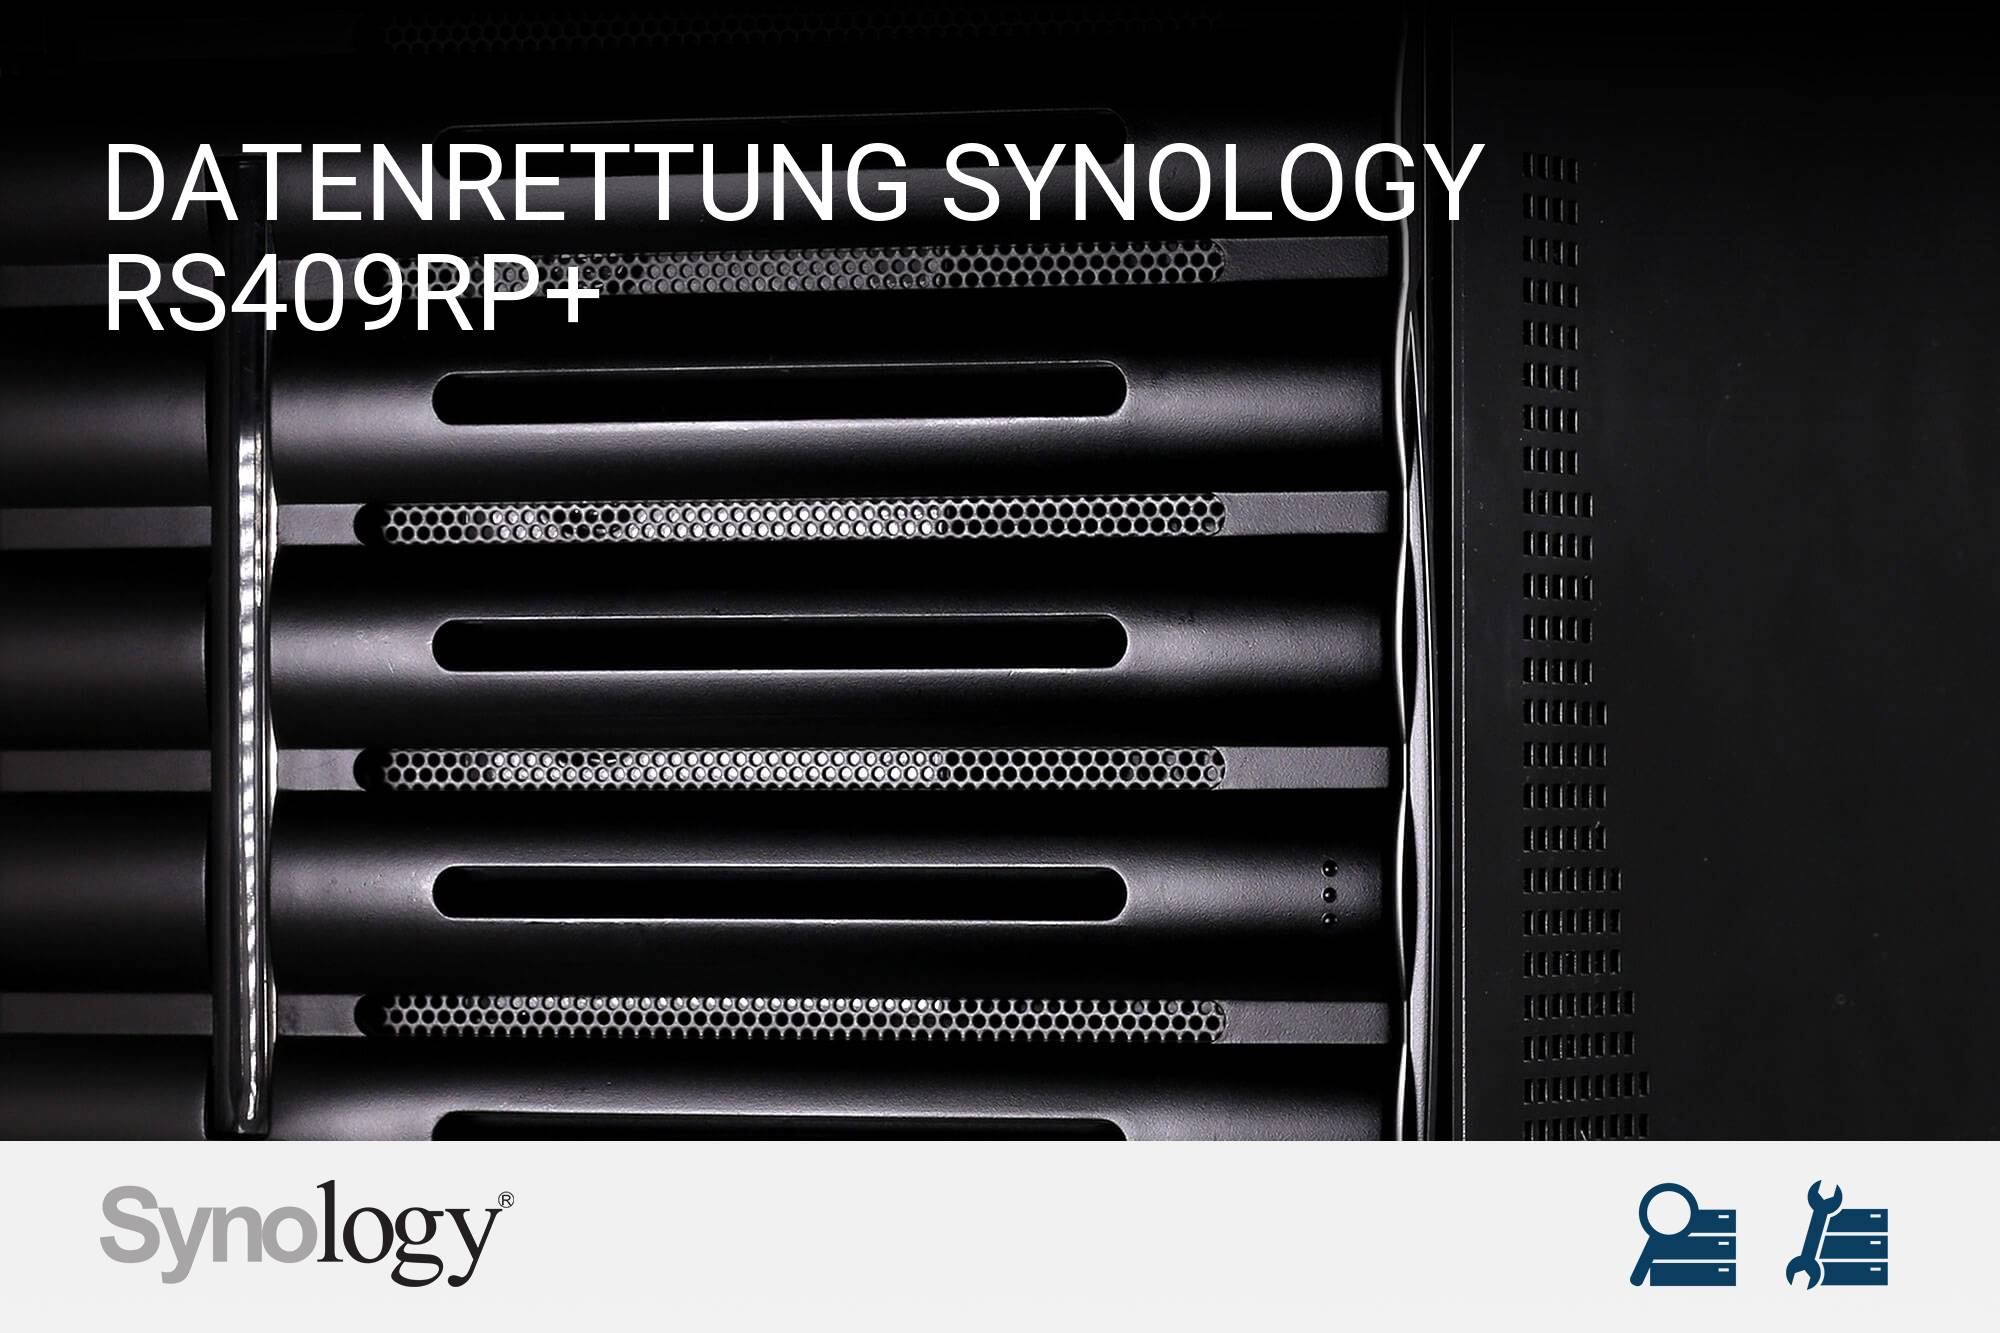 Synology RS409RP+